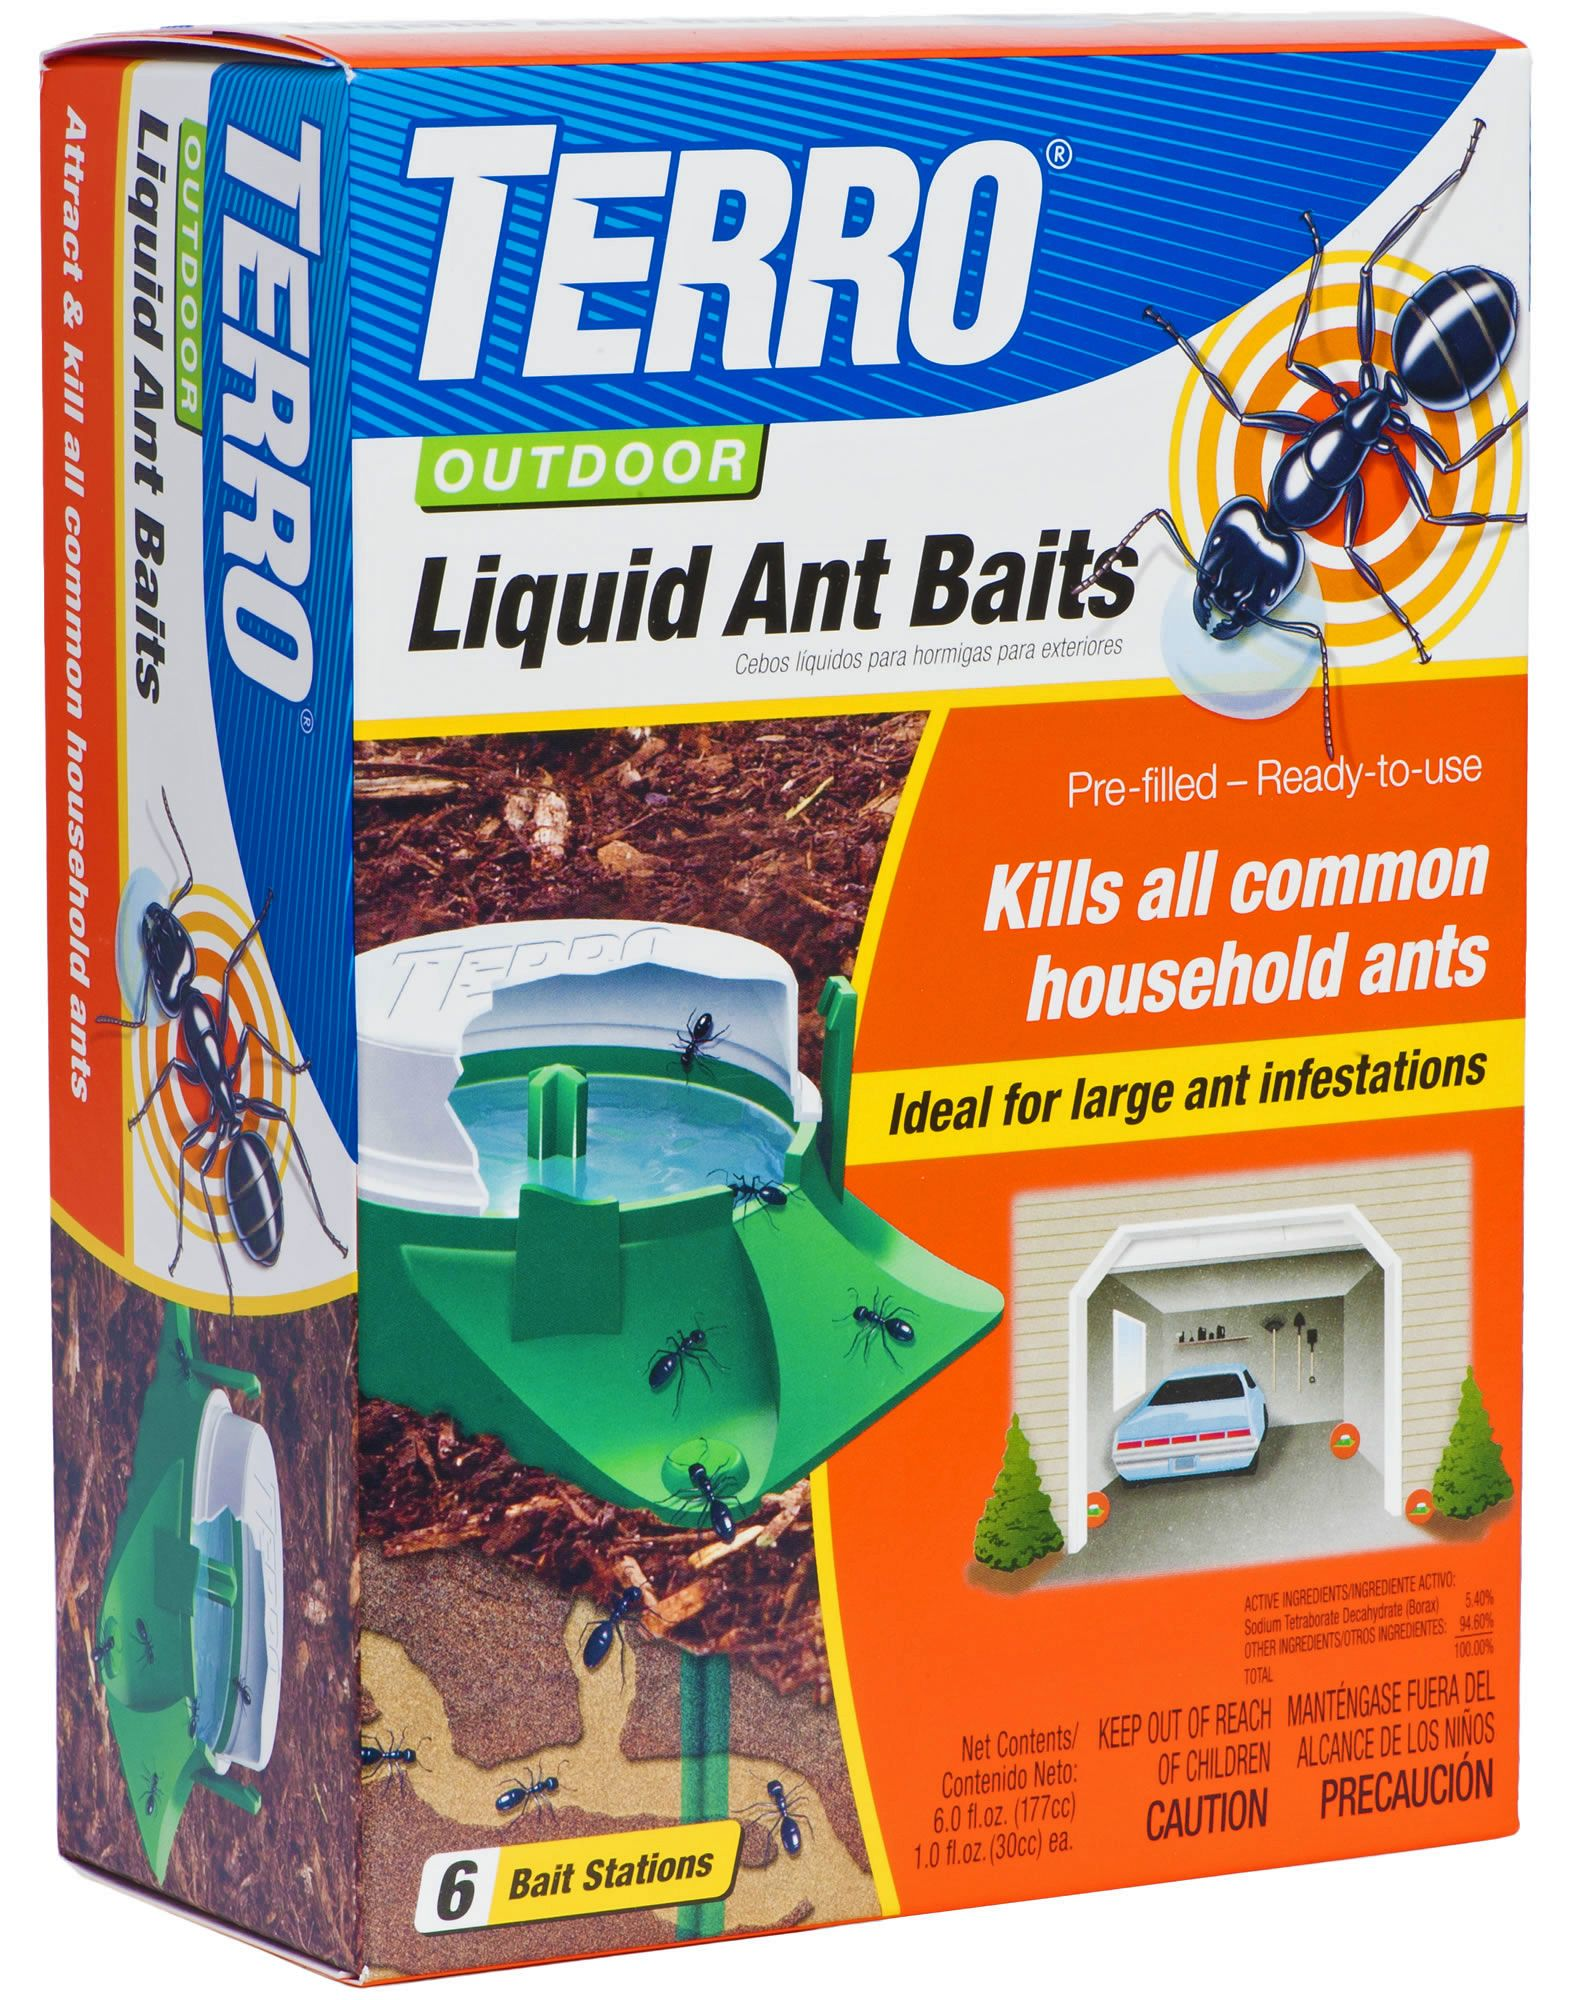 Natural Ant Killer For Yard Terro Outdoor Liquid Ant Bait Stations Model T1806